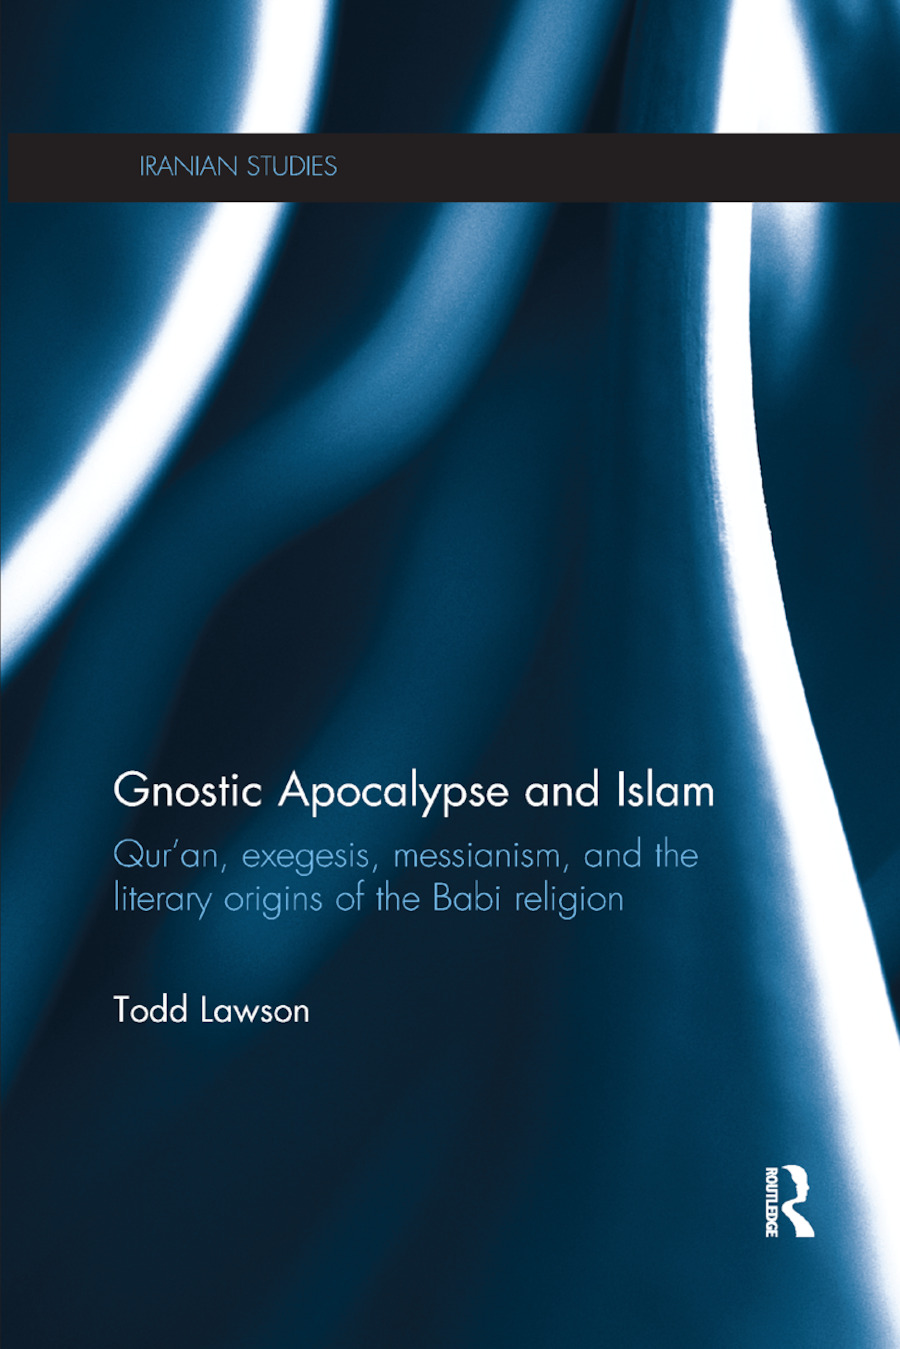 Gnostic Apocalypse and Islam